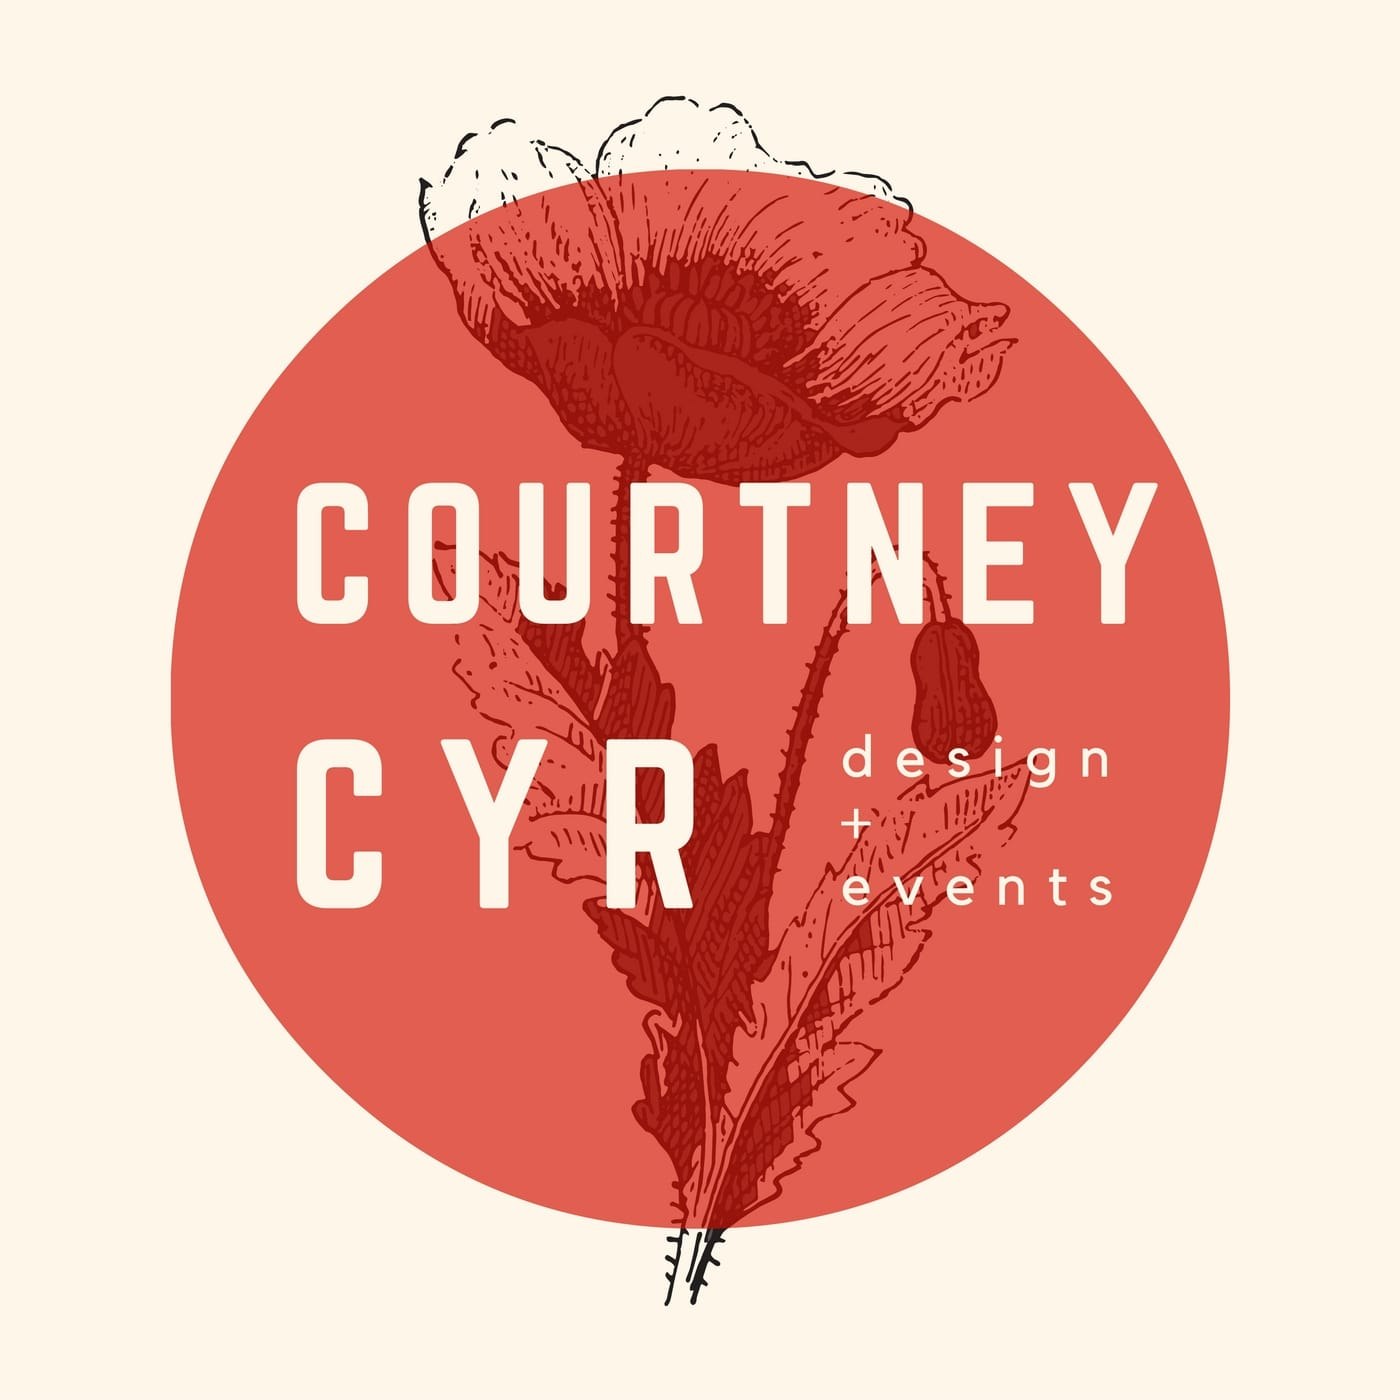 Courtney Cyr Design + Events - Email: Courtney@CourtneyCyrDesign.comWebsite: courtneycyrdesign.com